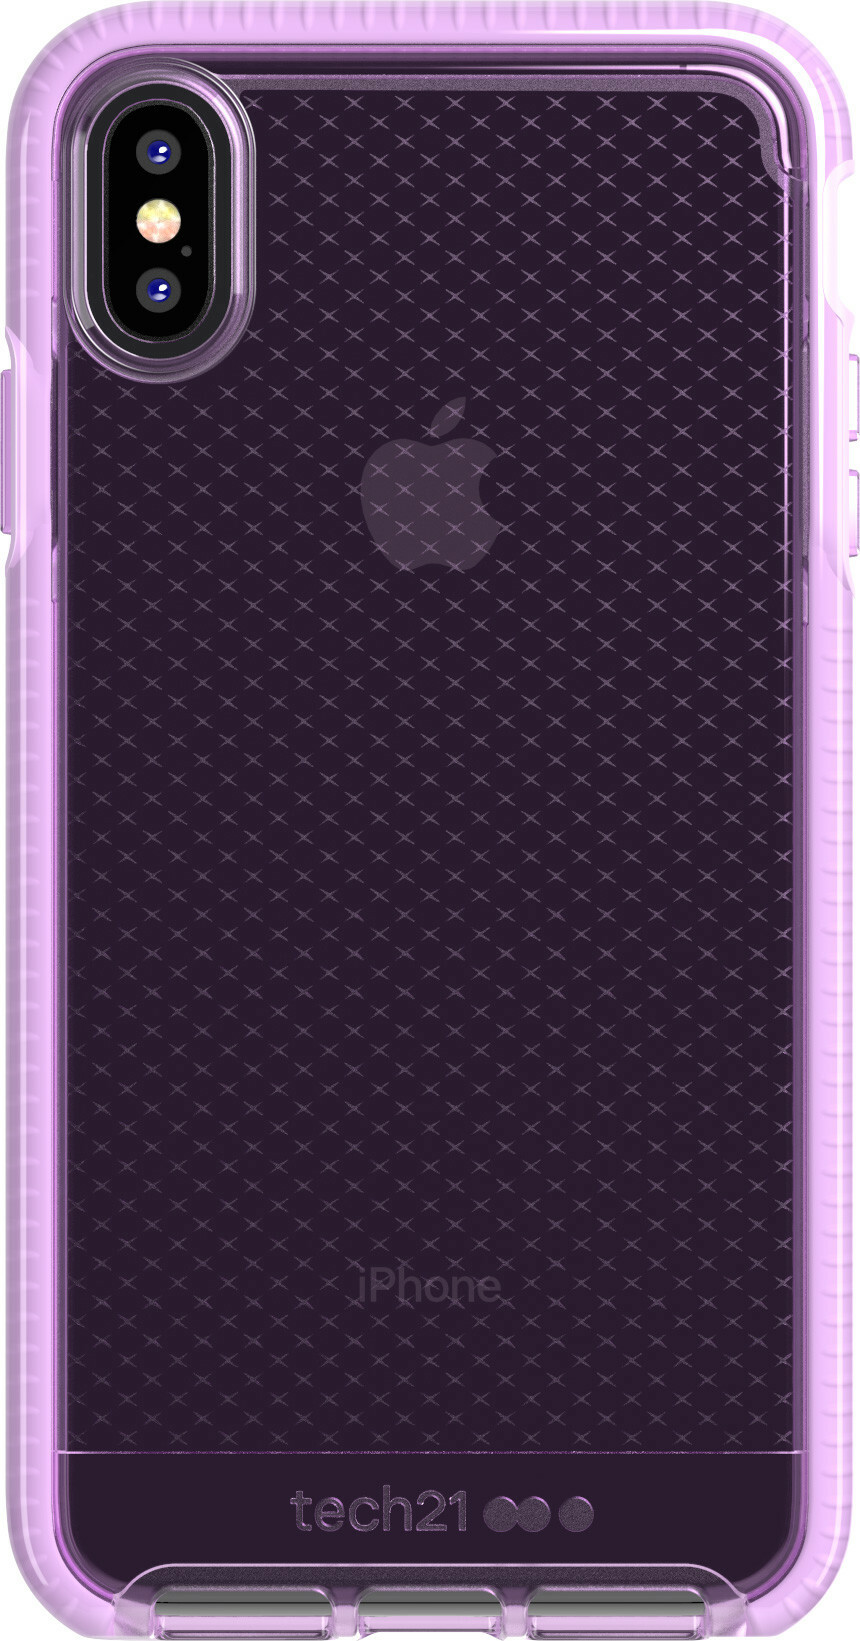 Tech21 Evo Check Apple iPhone XS Max Orchid